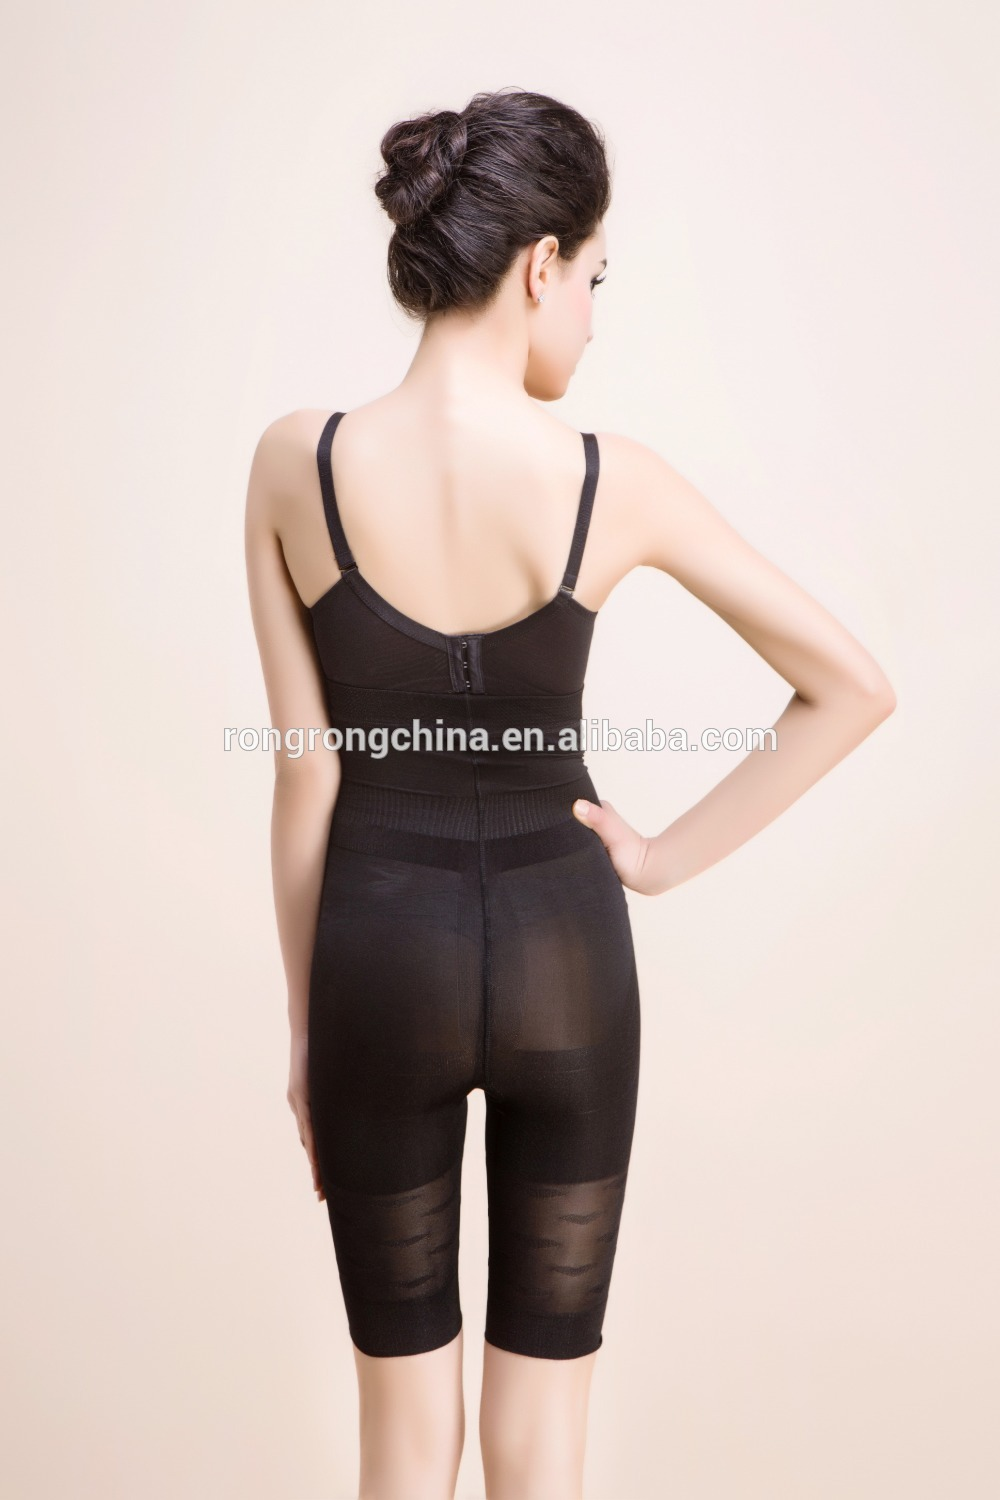 Custom knitted and seamed sexy transparent bodysuit women shapers 35532